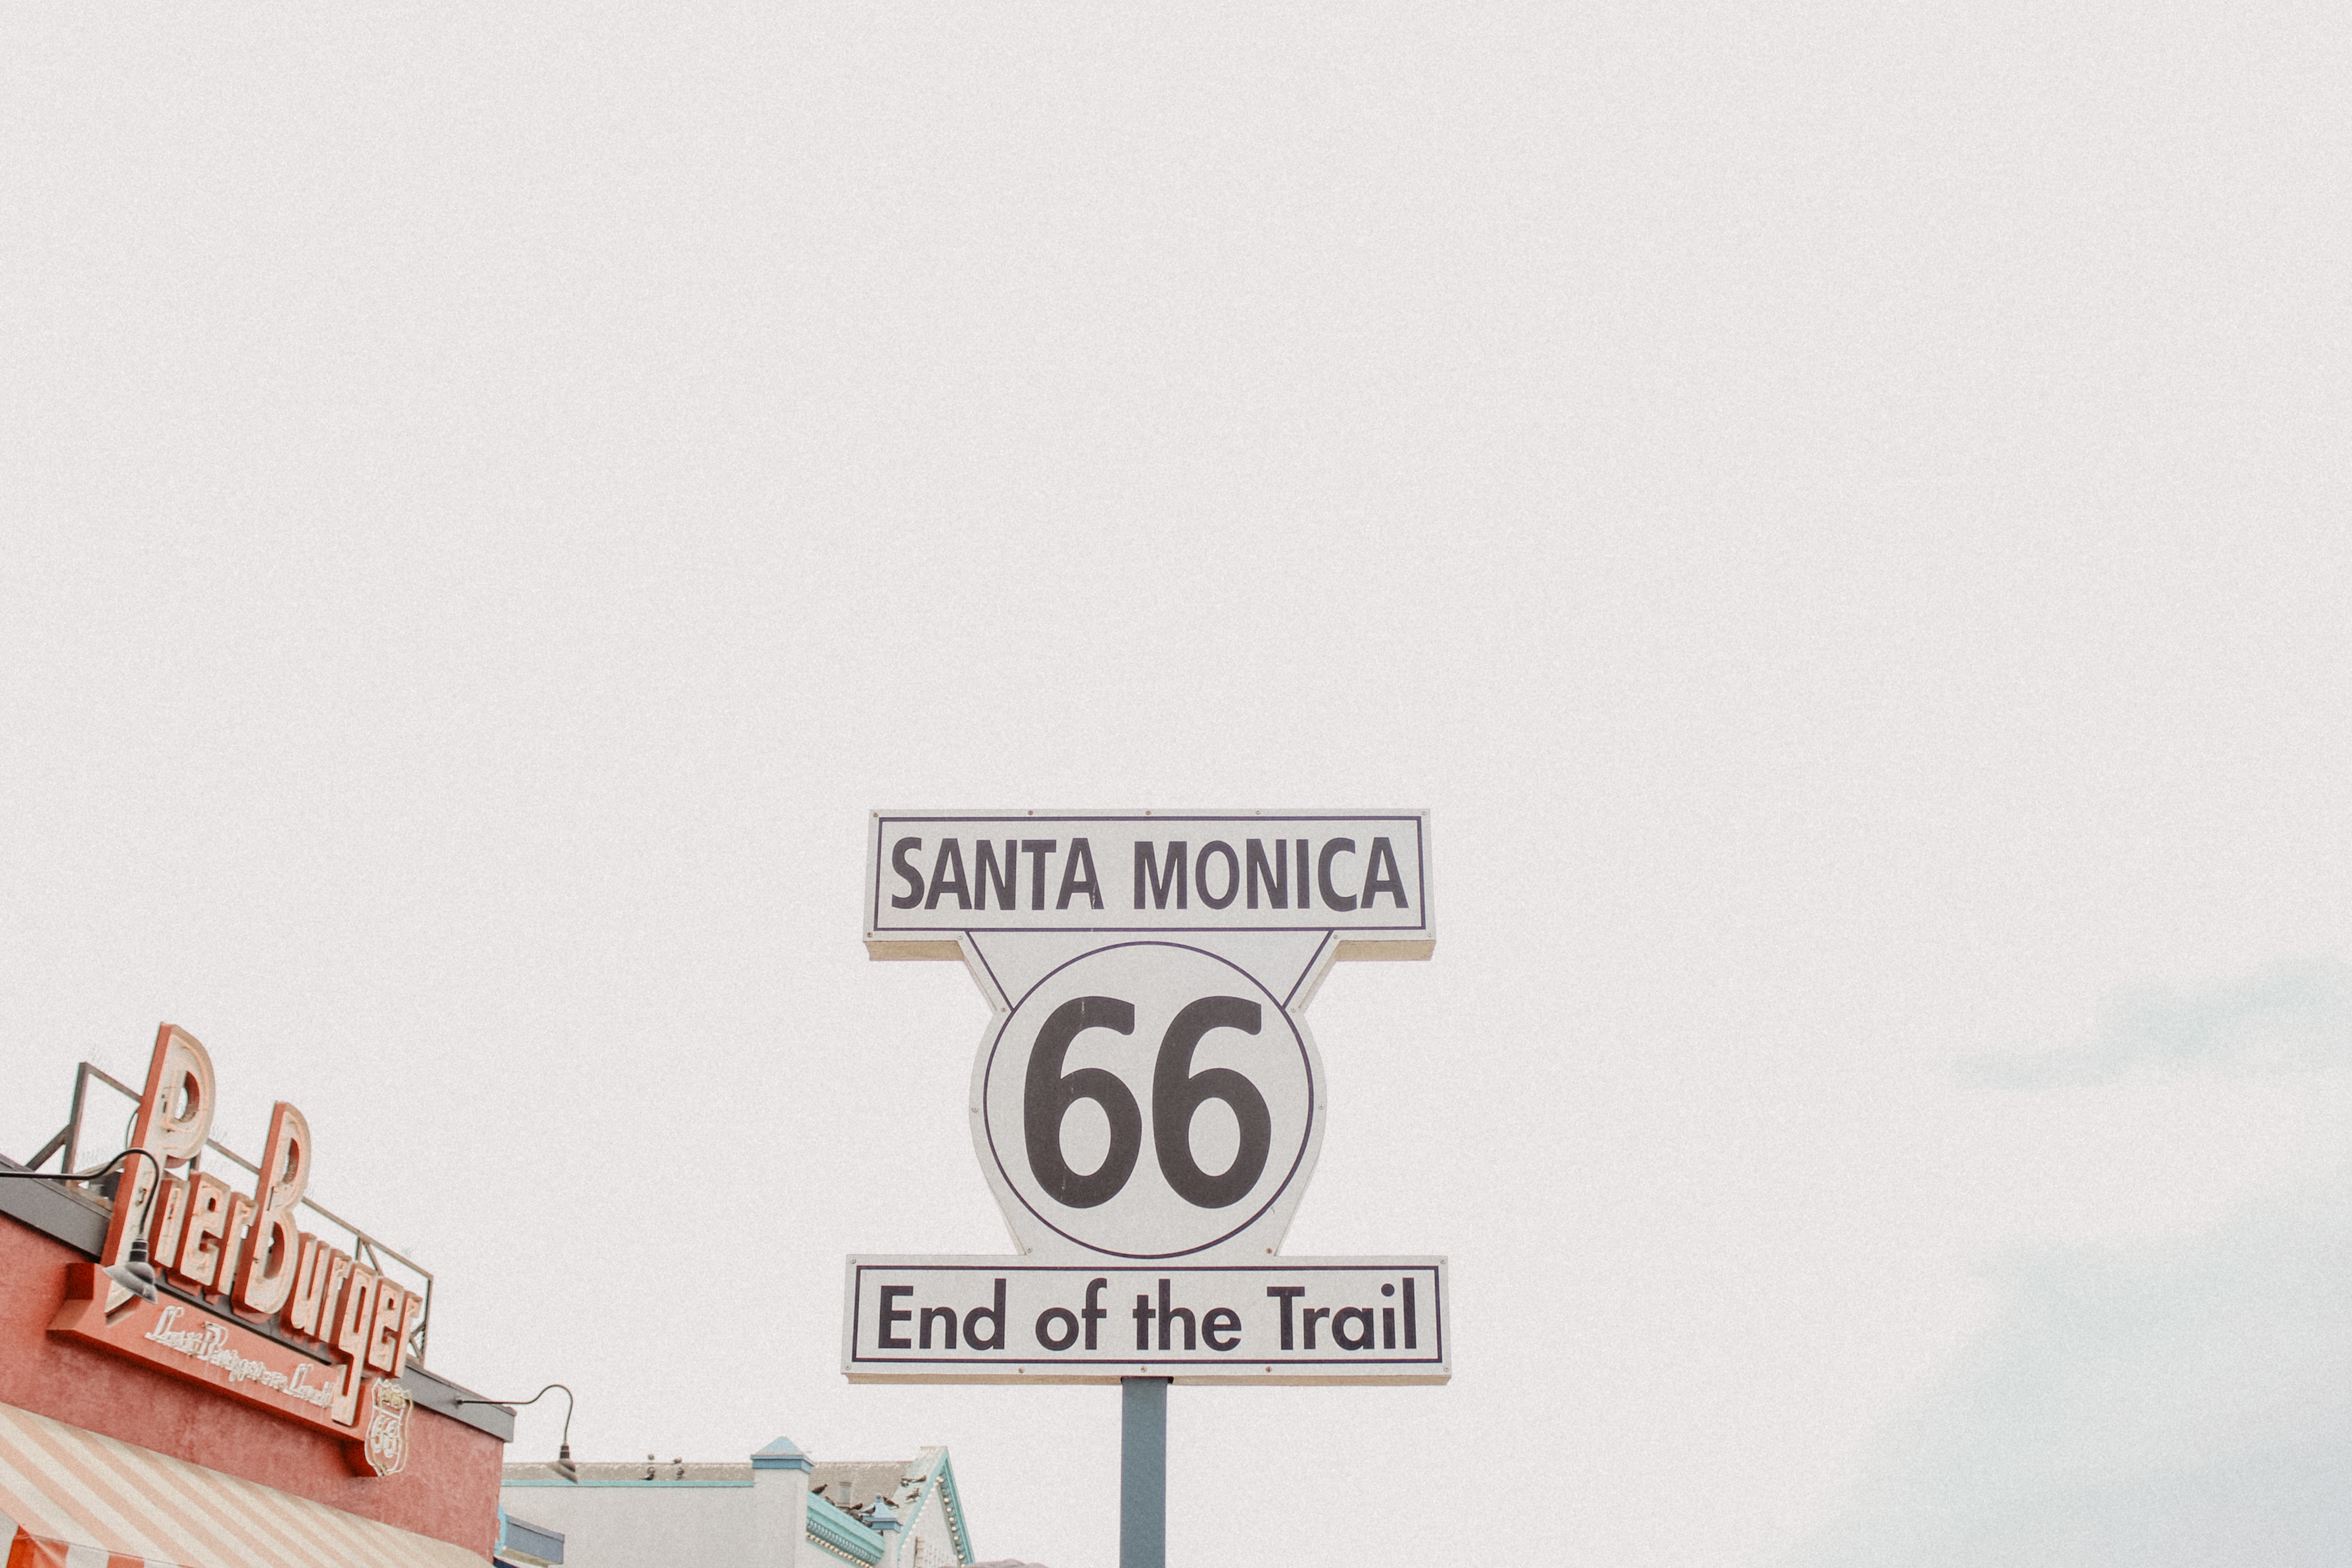 Santa Monica End of the Trail signboard